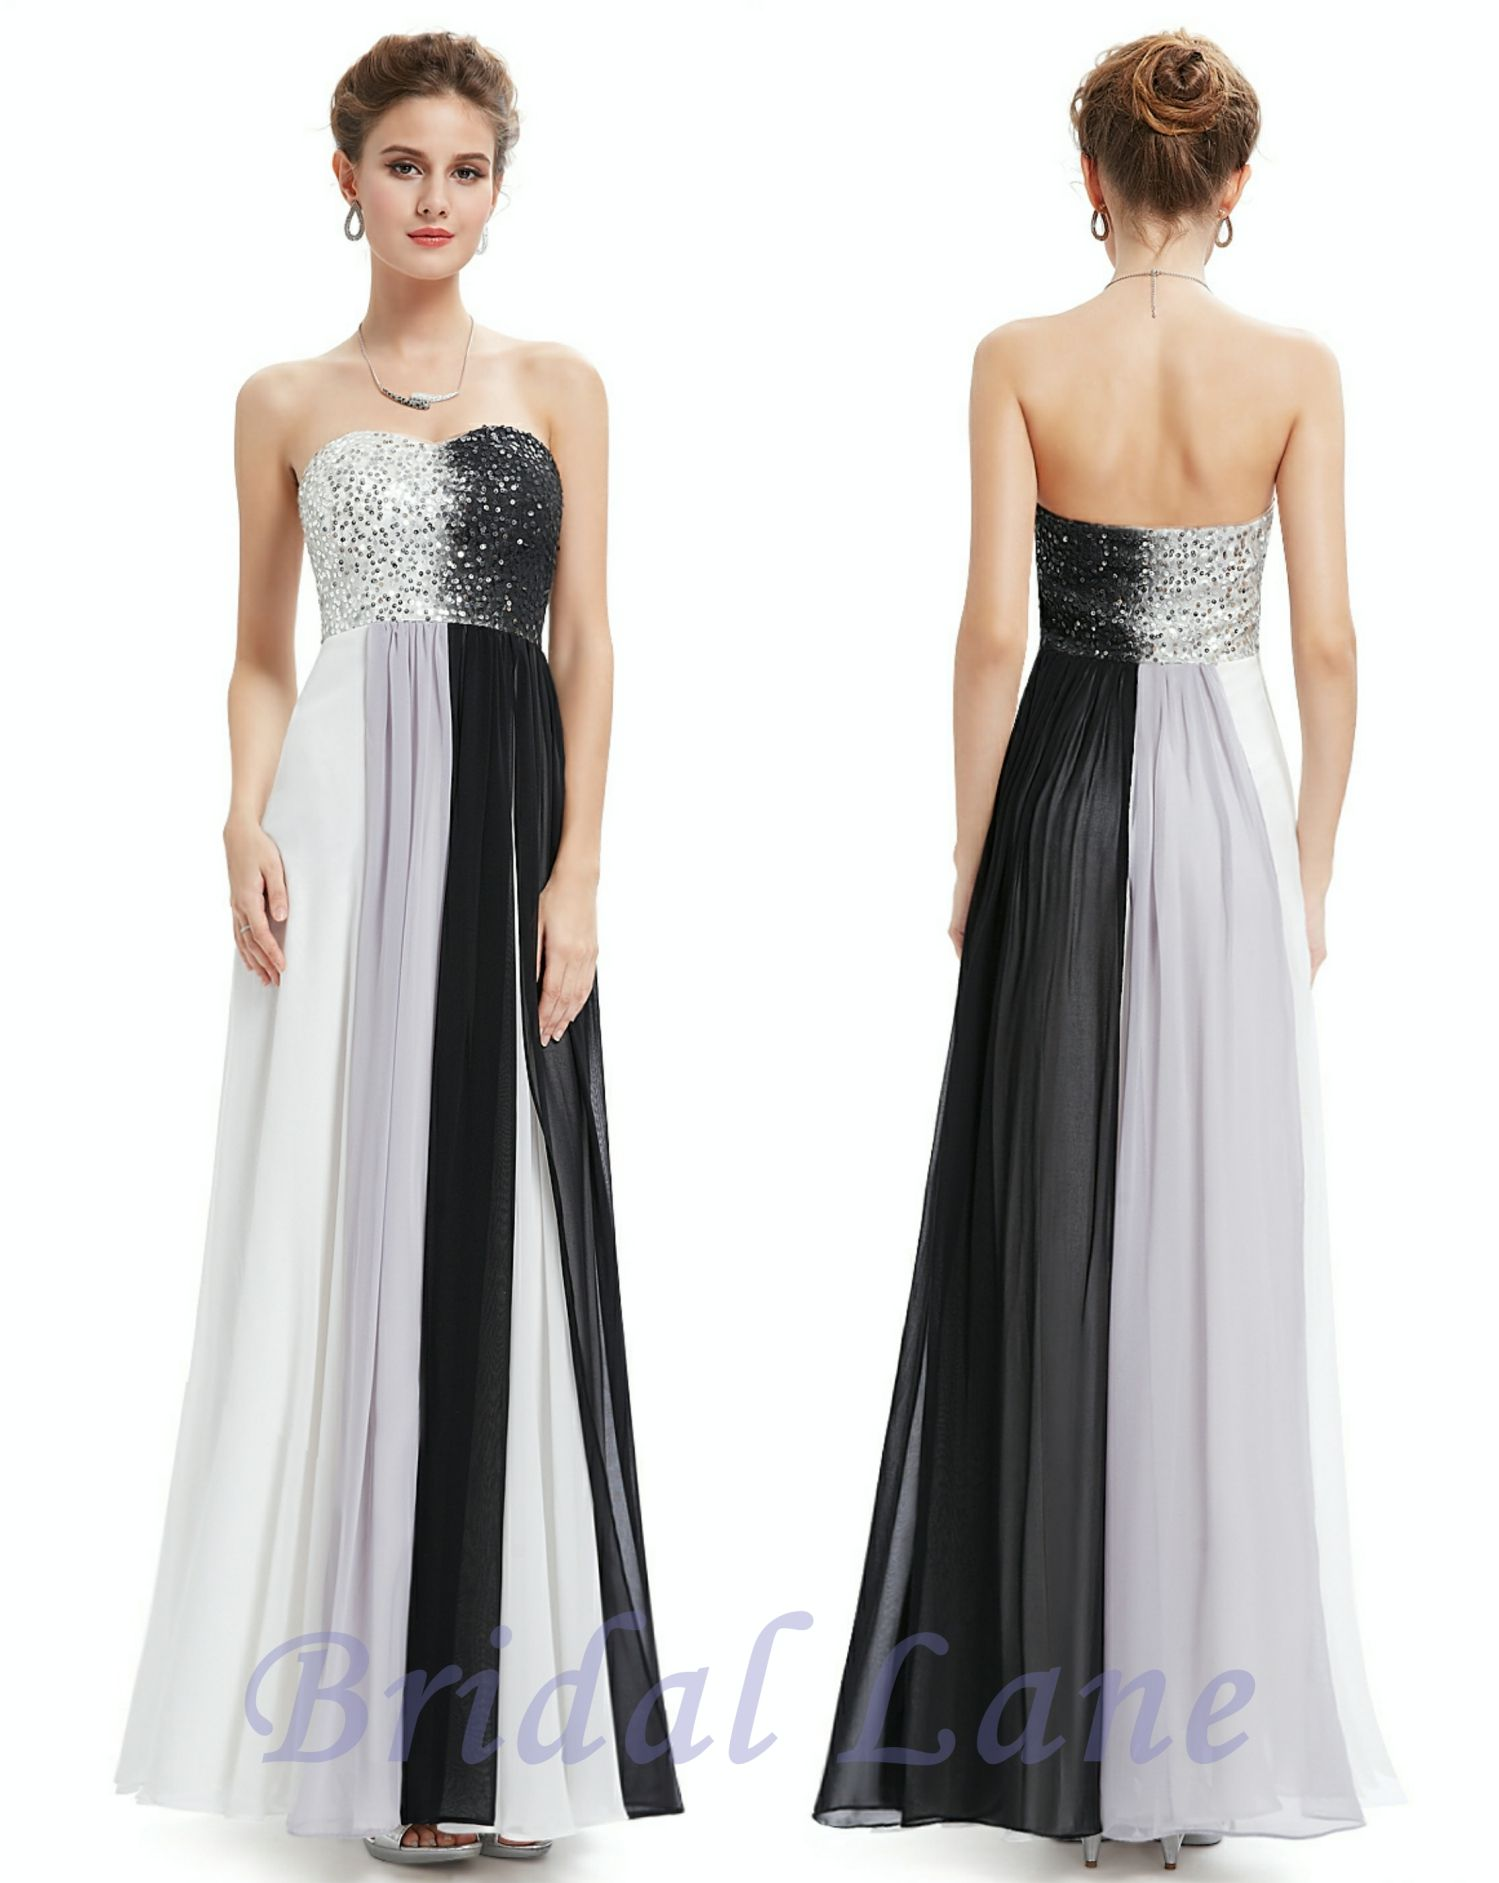 Matric dance dresses matric farewell dresses evening dresses pictures - We Stock Matric Farewell Dresses Evening Dresses Cocktail Dresses At Our Showroom In Bloubergrant Cape Town South Africa Ball Dresses